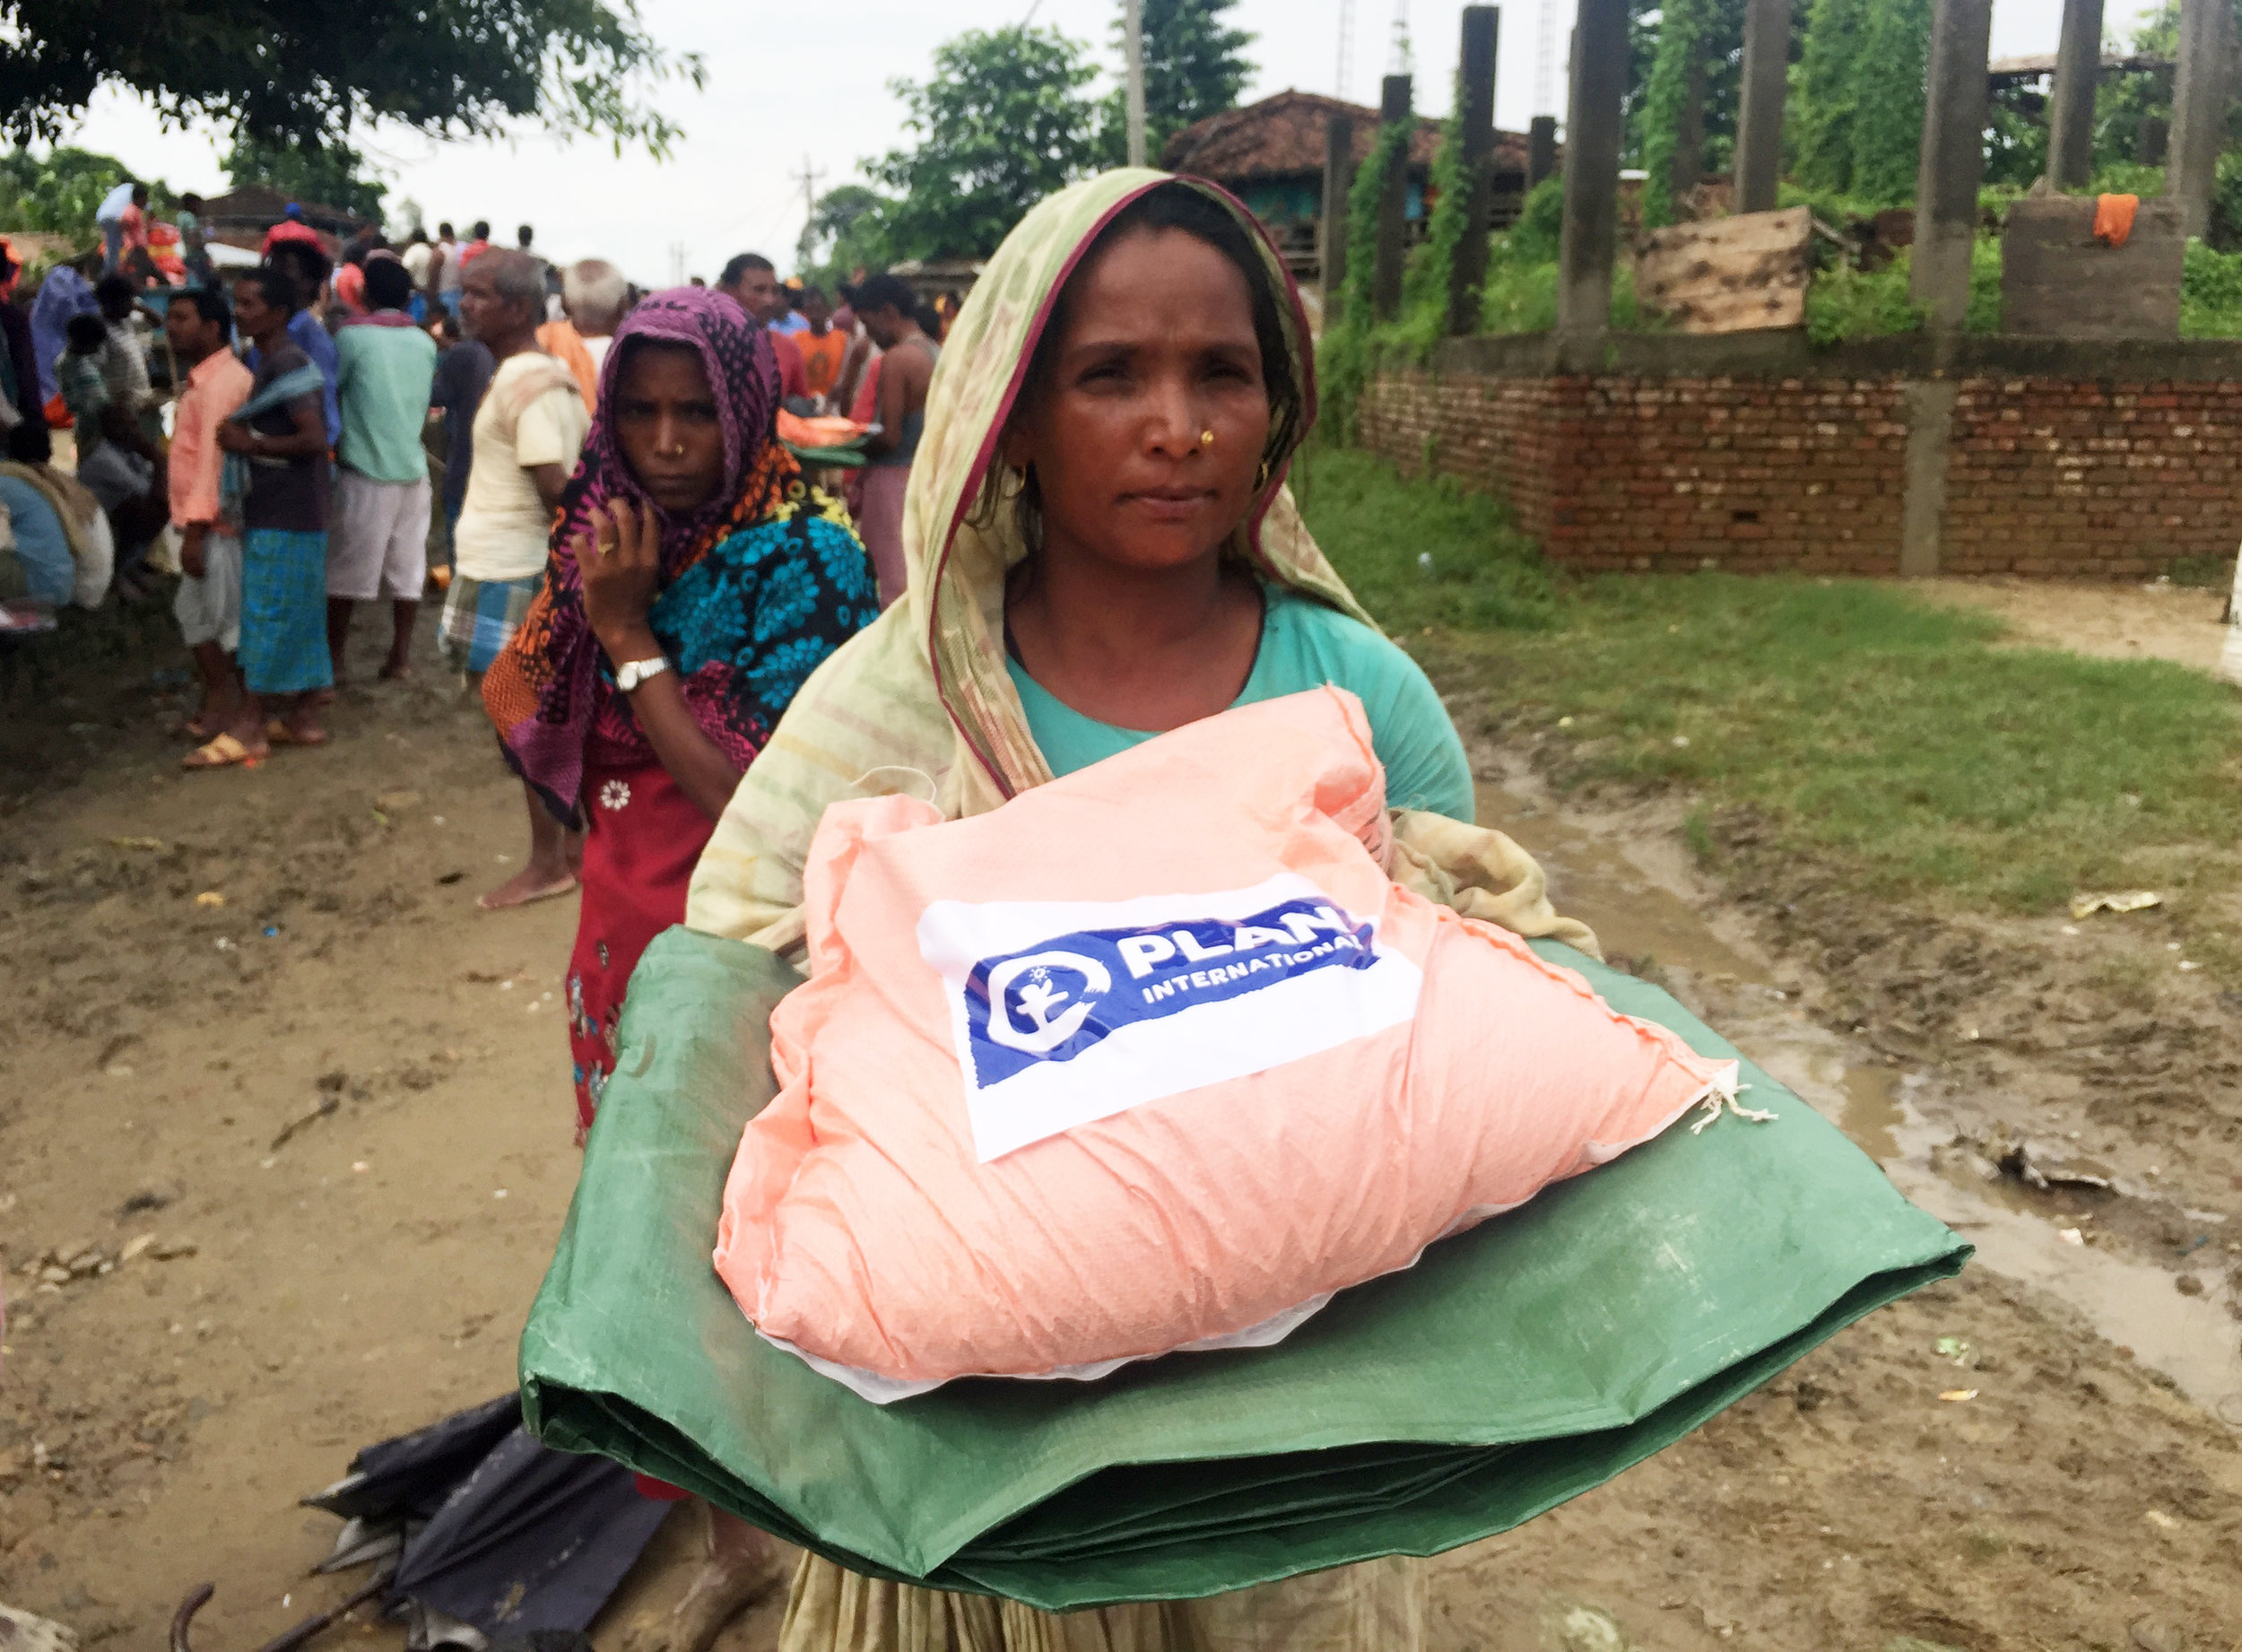 Basic non-food items were included in distributions to flood-impacted communities as part of the Plan International Australia project © Plan International Australia